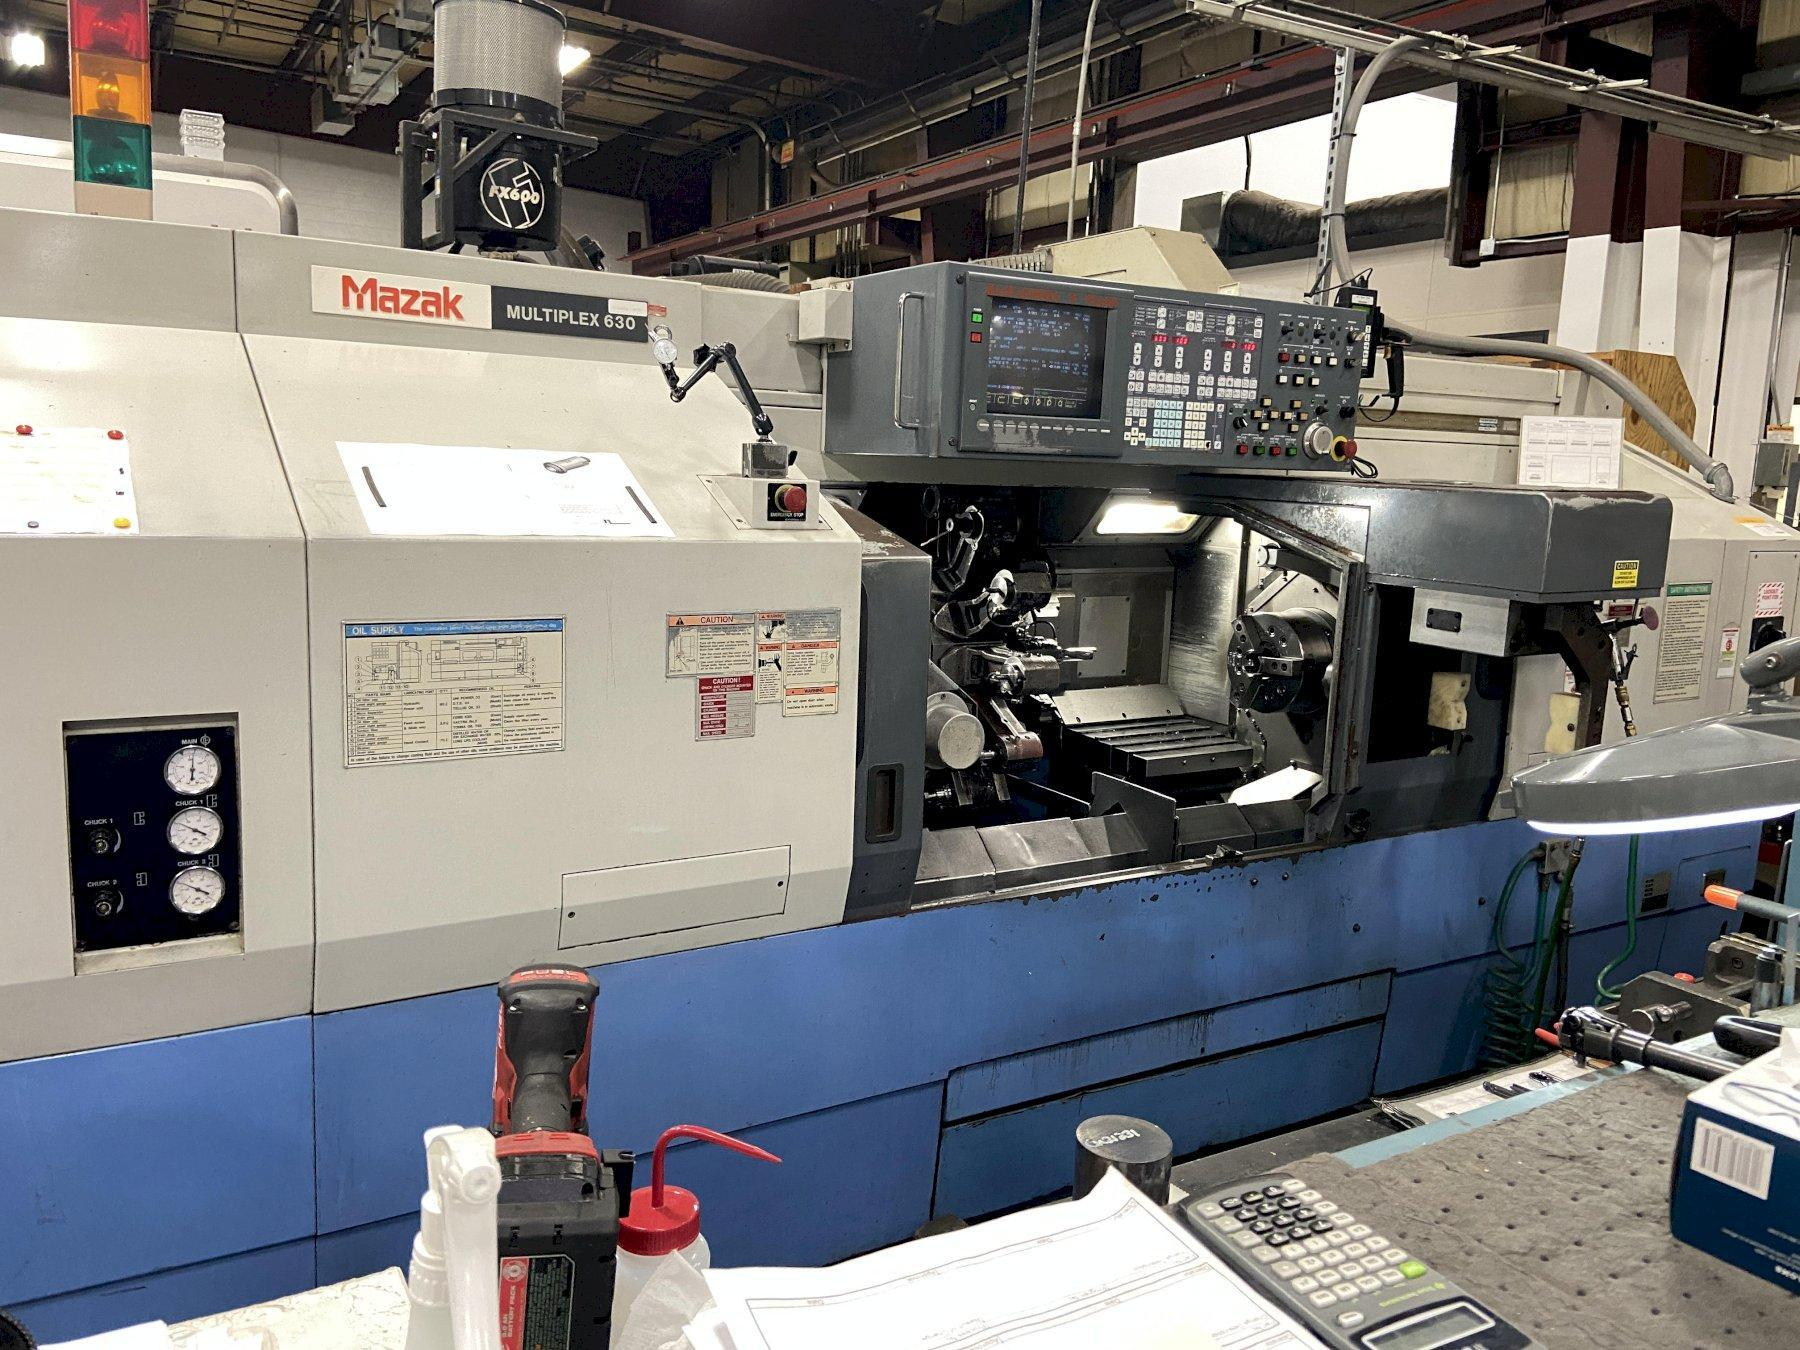 Mazak Multiplex 630 (5) Axis CNC Twin Spindle Lathe, Mazatrol T-Plus, Live Tooling, (2)10